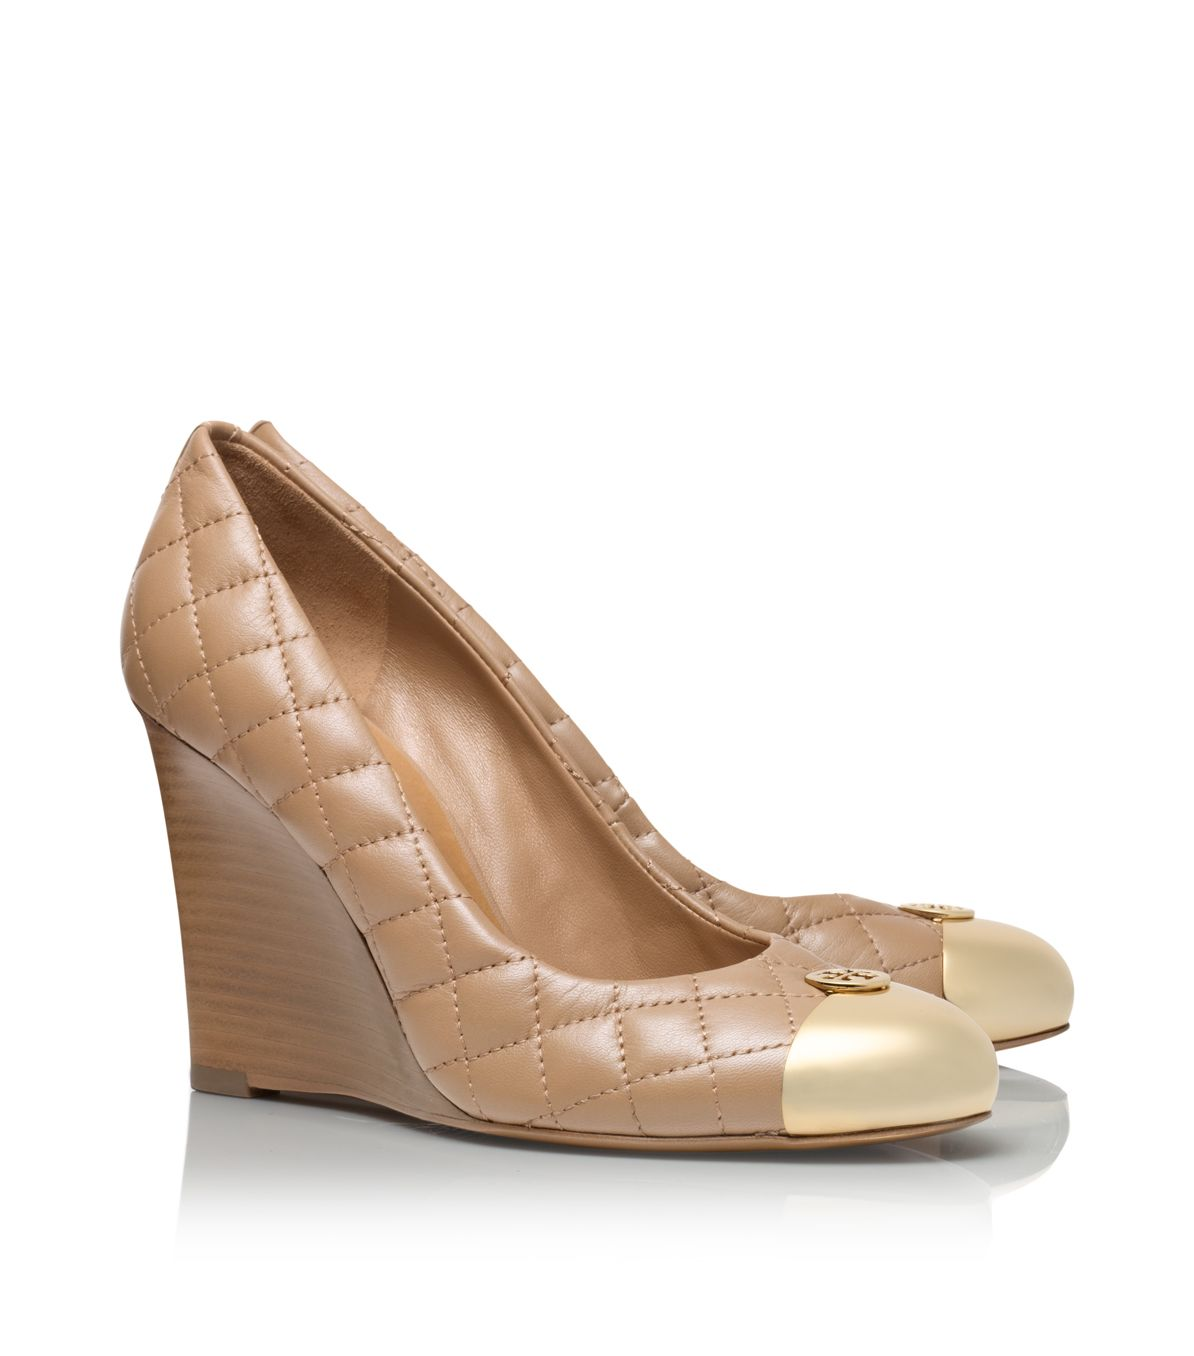 fb479140799b Tory Burch Kaitlin Wedge in Natural - Lyst